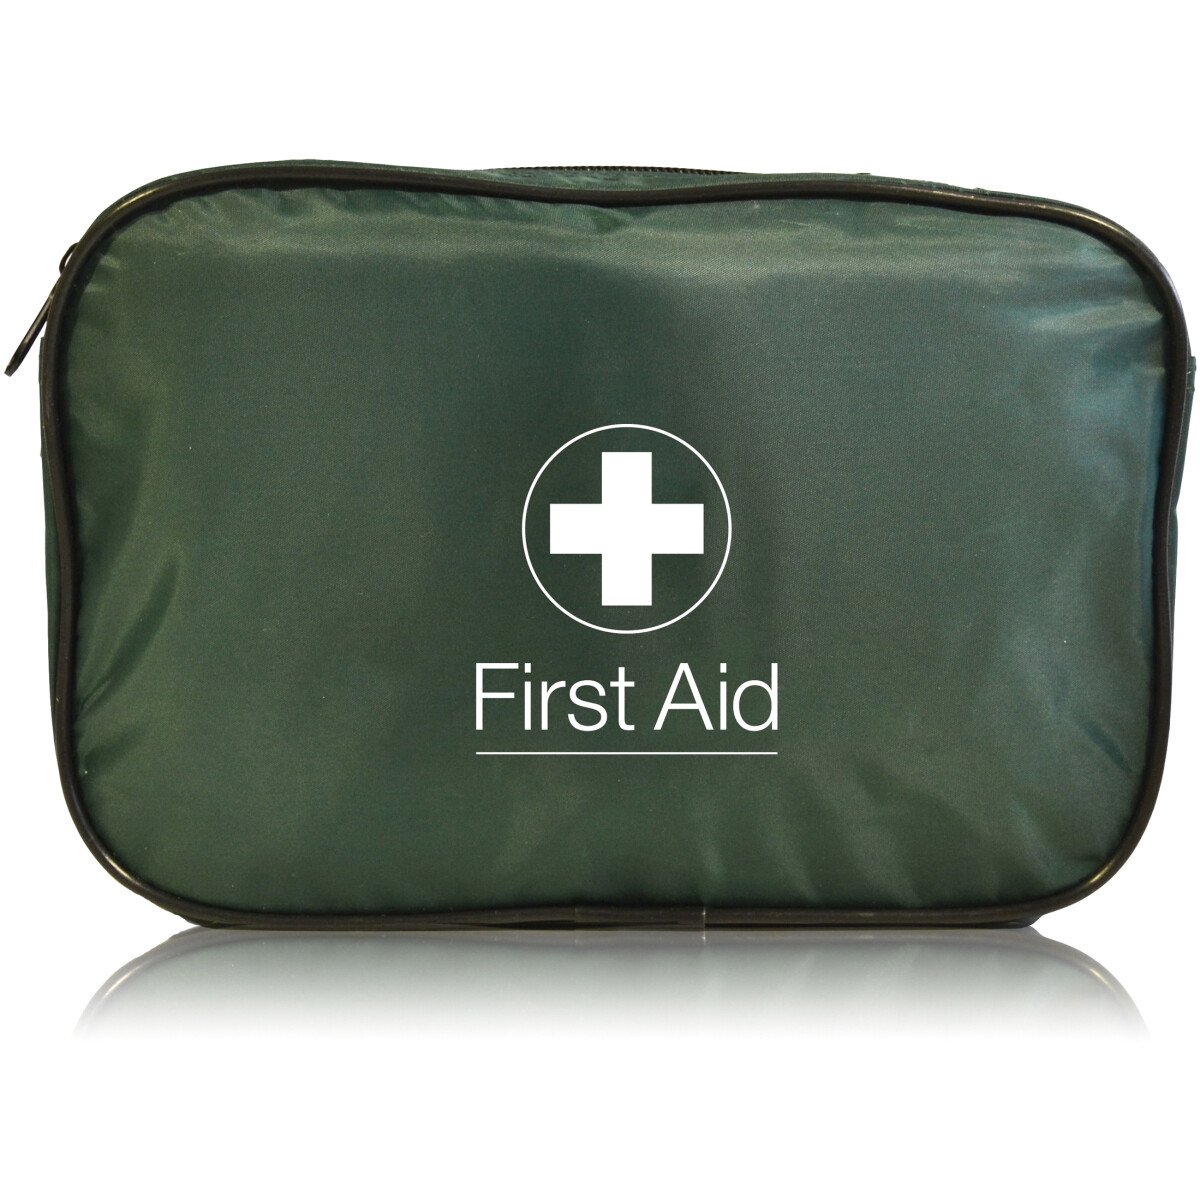 Lawson-HIS 30PCVB10 Blue DoT Public Carrying Vehicle First Aid Kit Bag